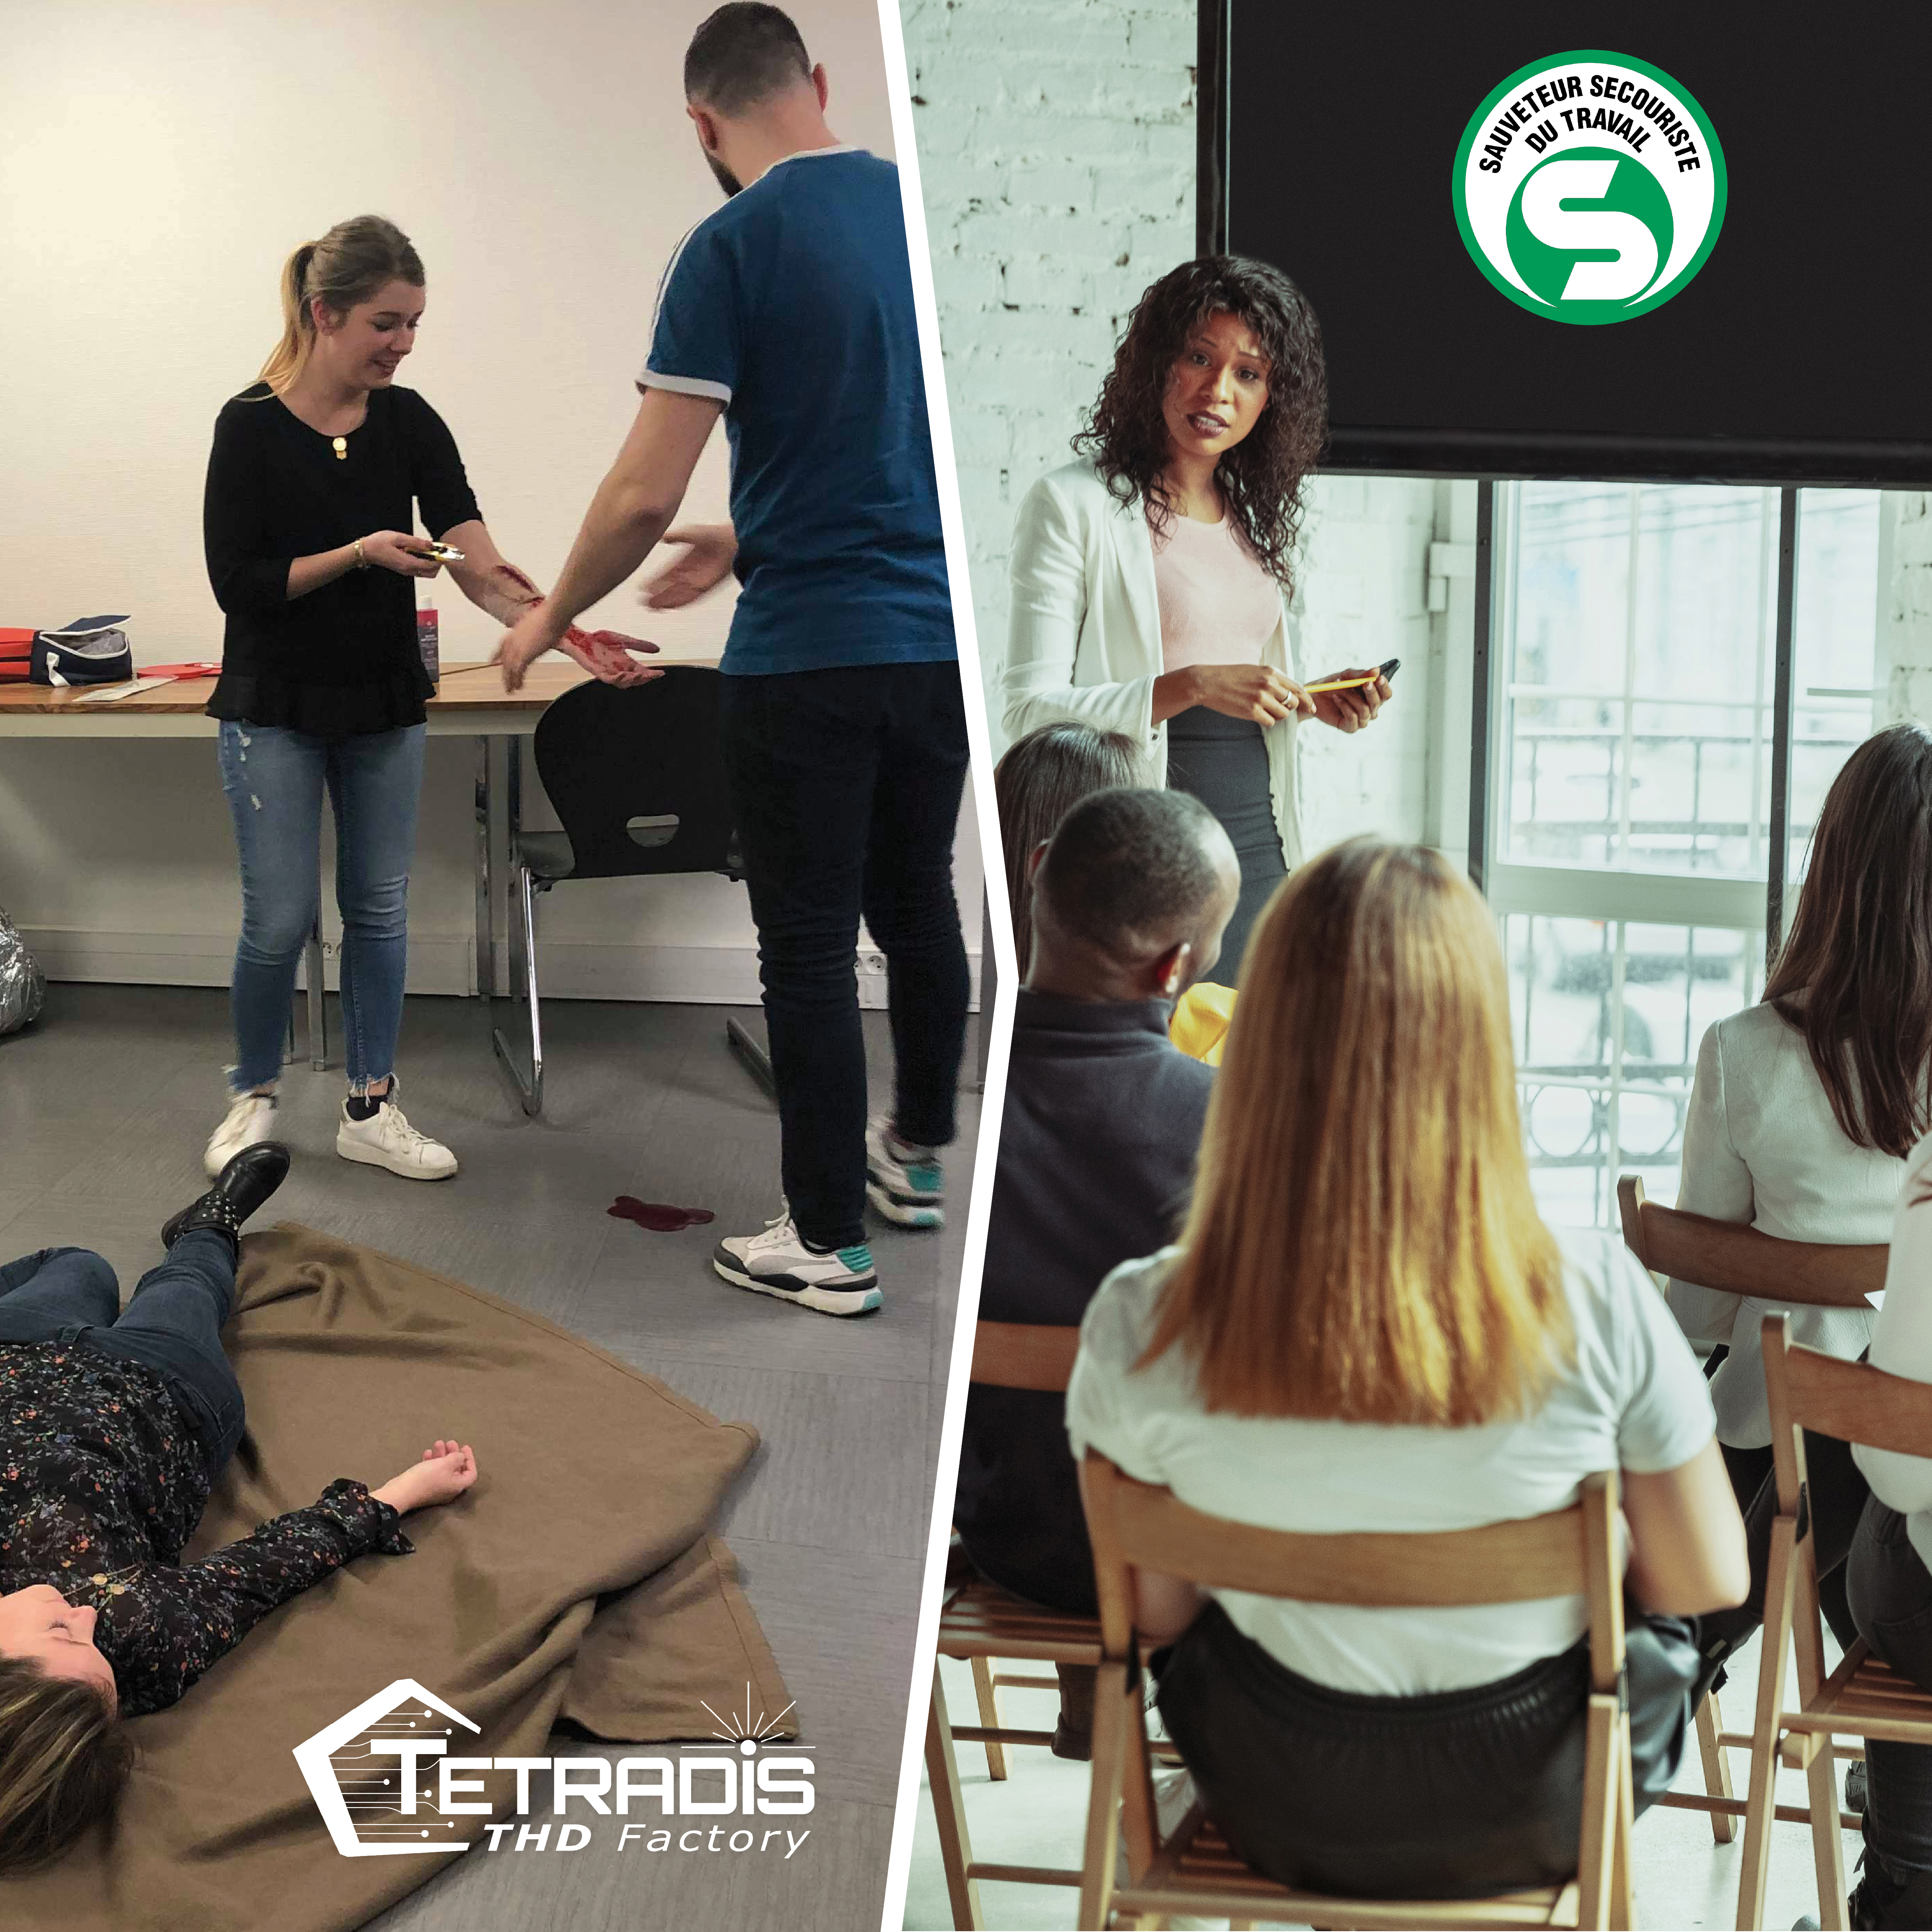 TETRADIS' employees are trained in first aid